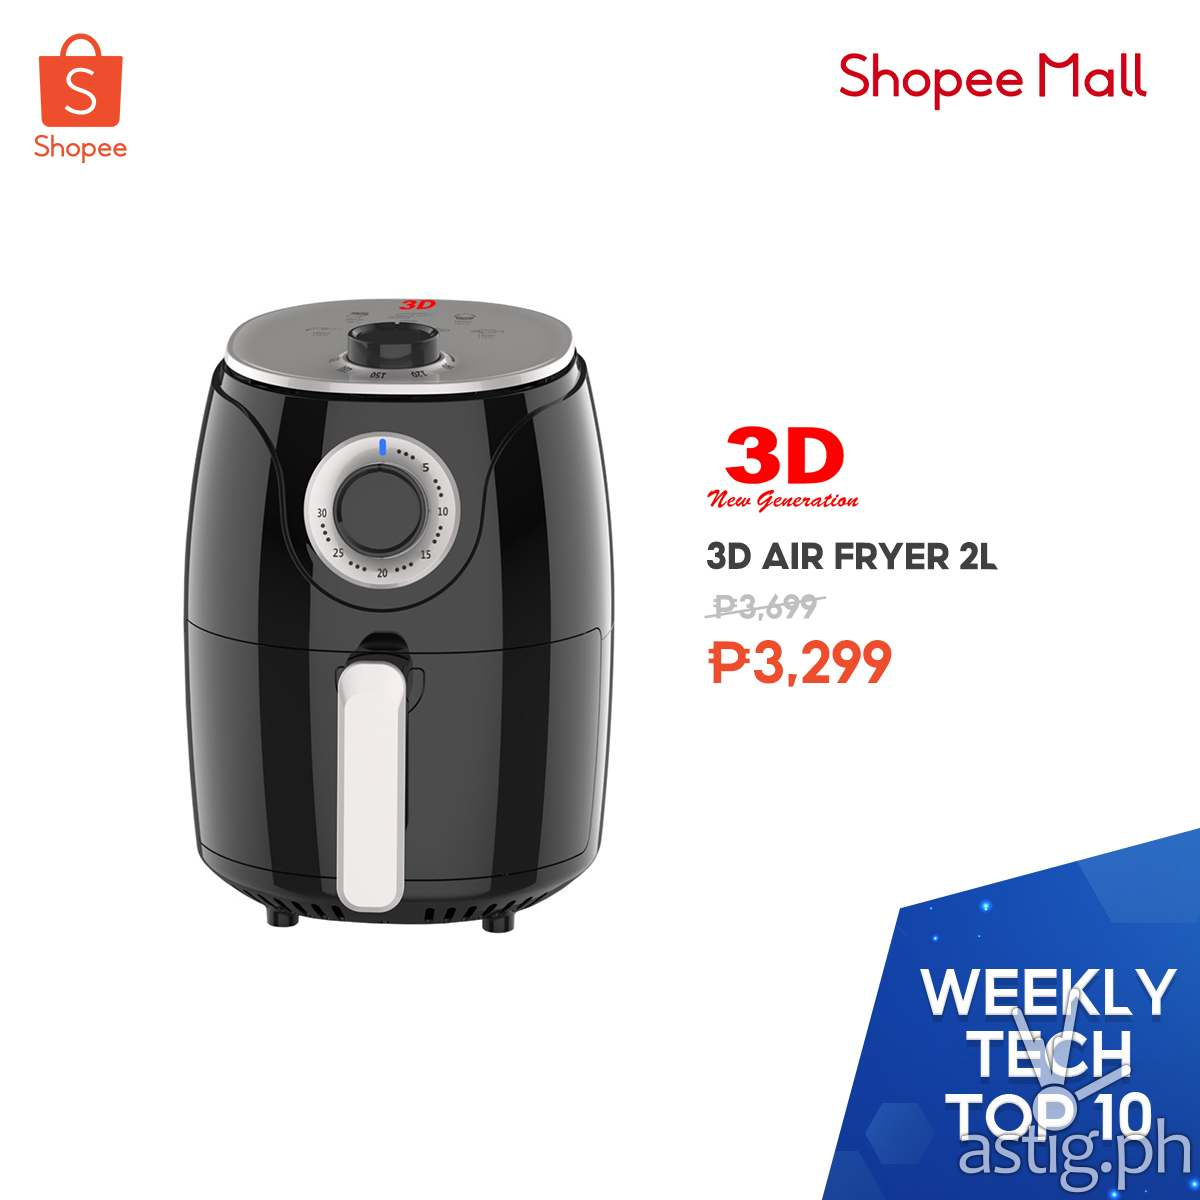 3D Air Fryer 2L